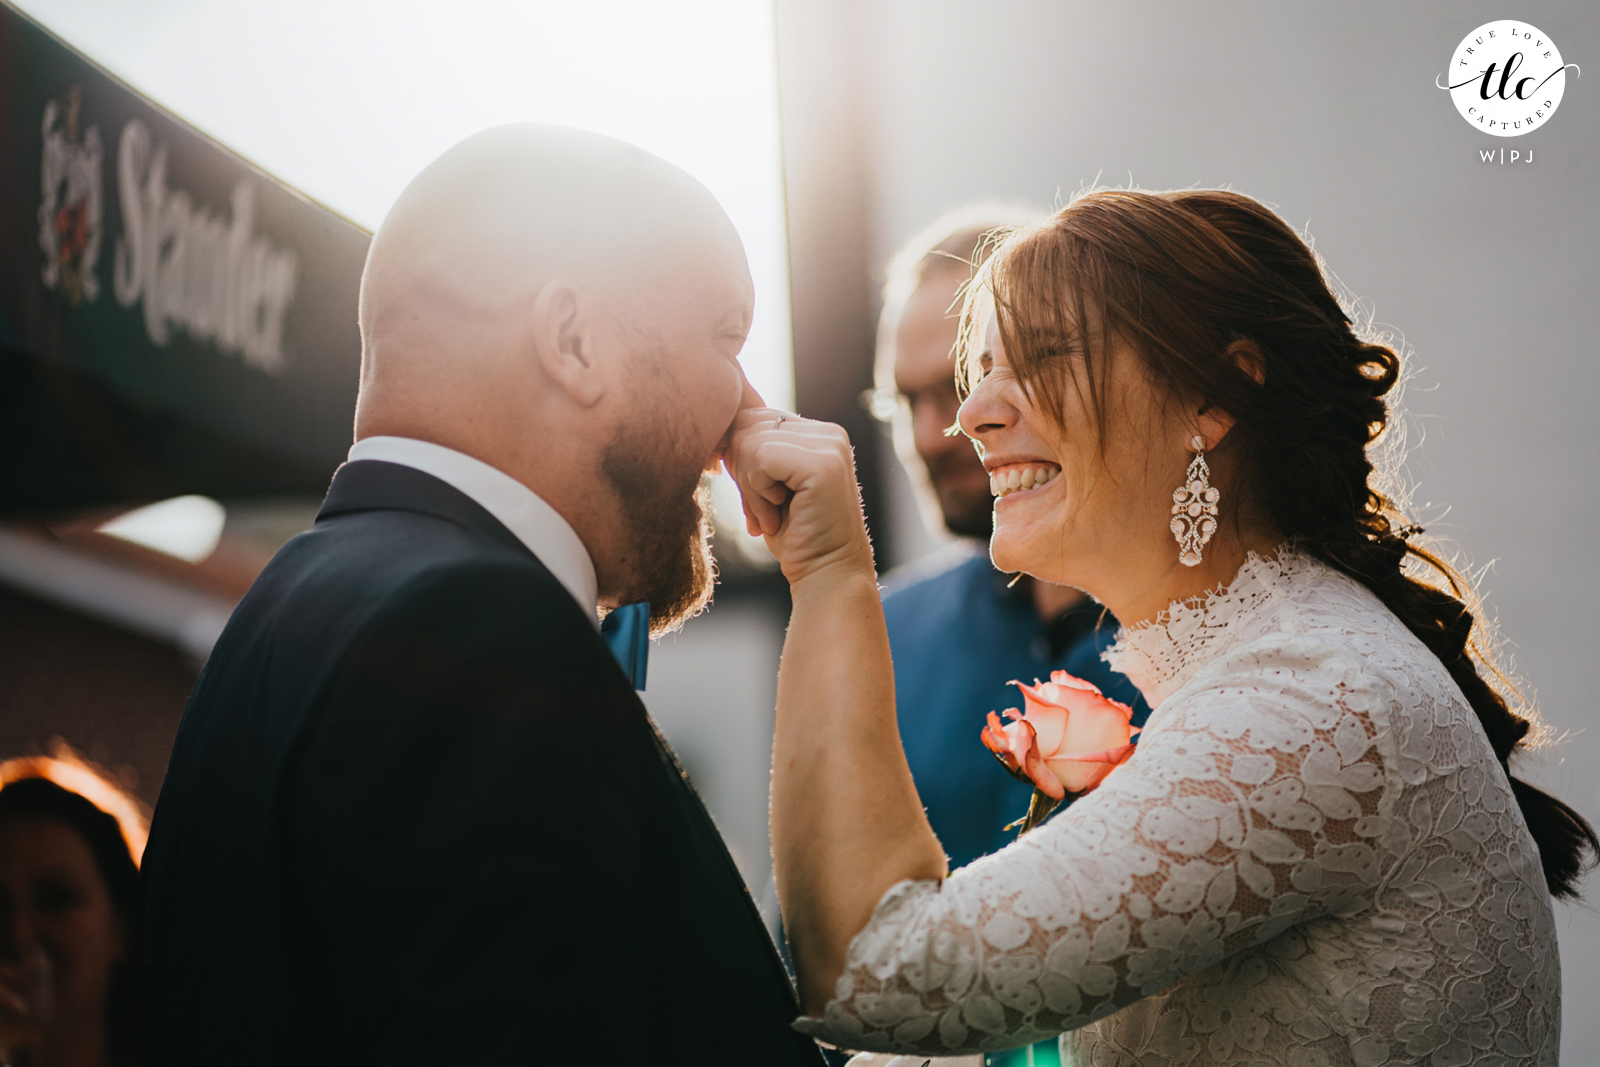 DE photography of a Recklinghausen, Germany wedding moment as the bride jokes with the groom